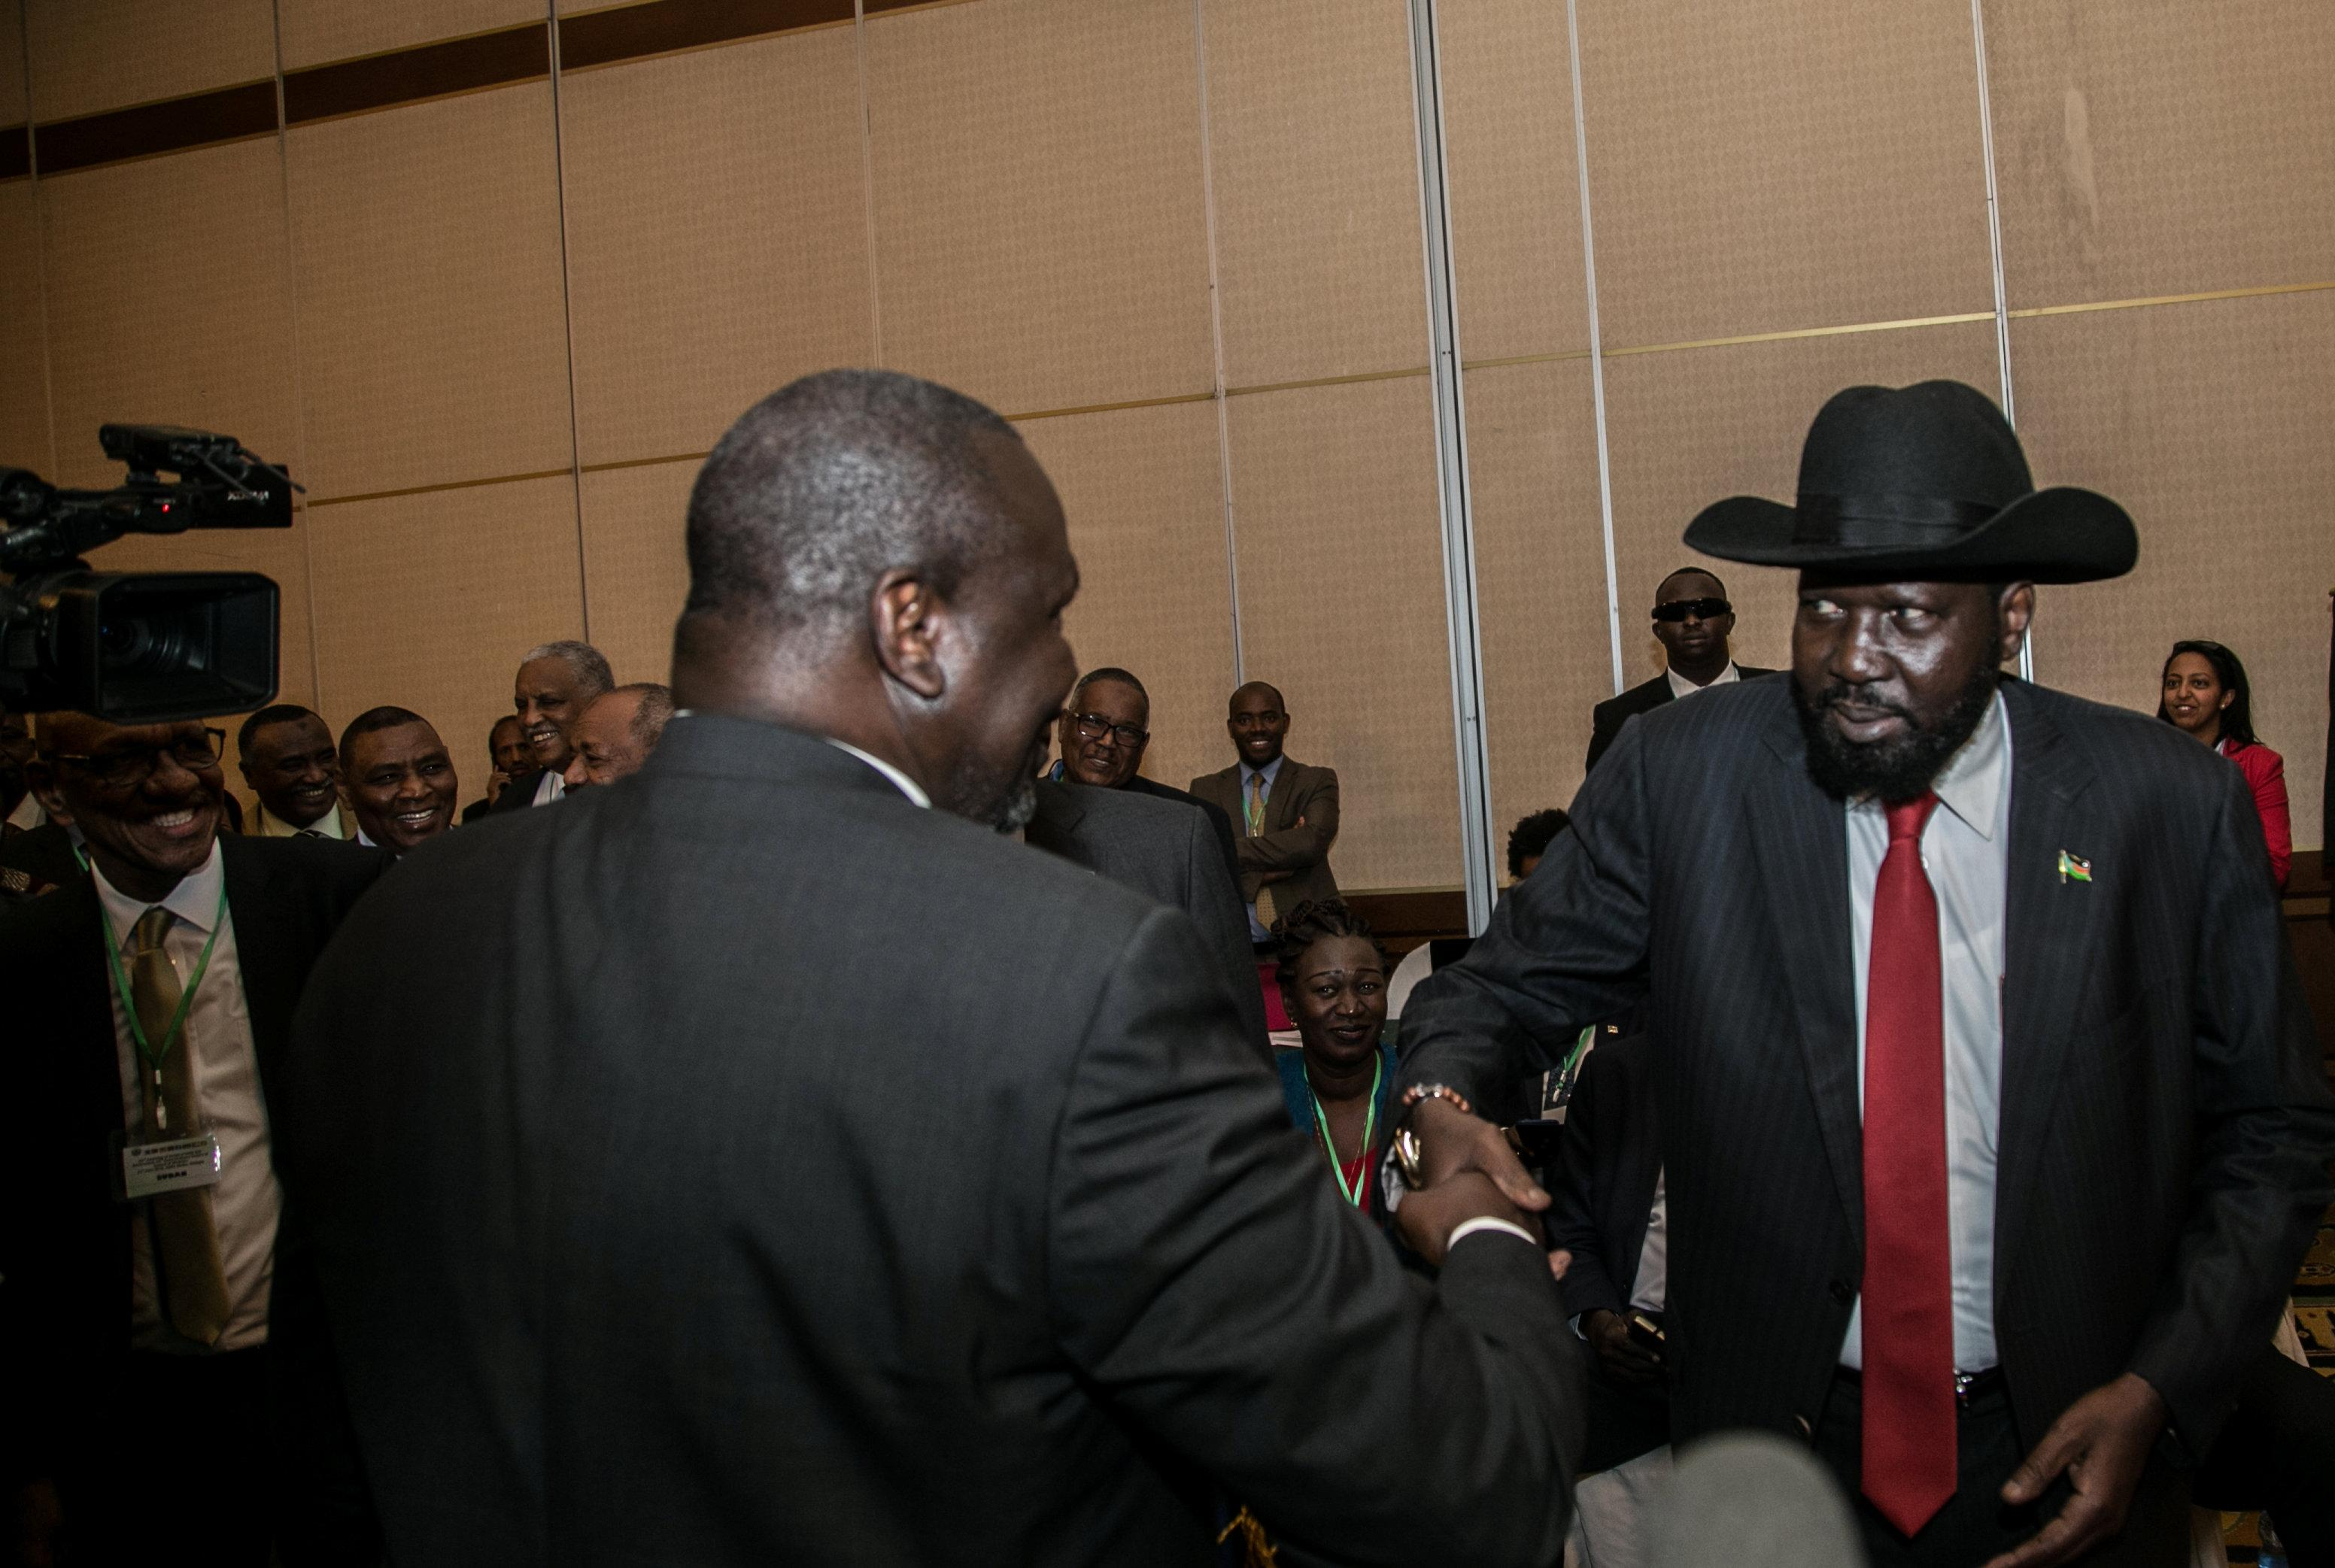 South Sudan President Salva Kiir (R) greets South Sudan Rebel leader Riek Machar during the 32nd Extra-Ordinary Summit of IGAD Assembly of Heads of State and Government in Addis Ababa, Ethiopia June 21, 2018. Presidential Press Service/Handout via